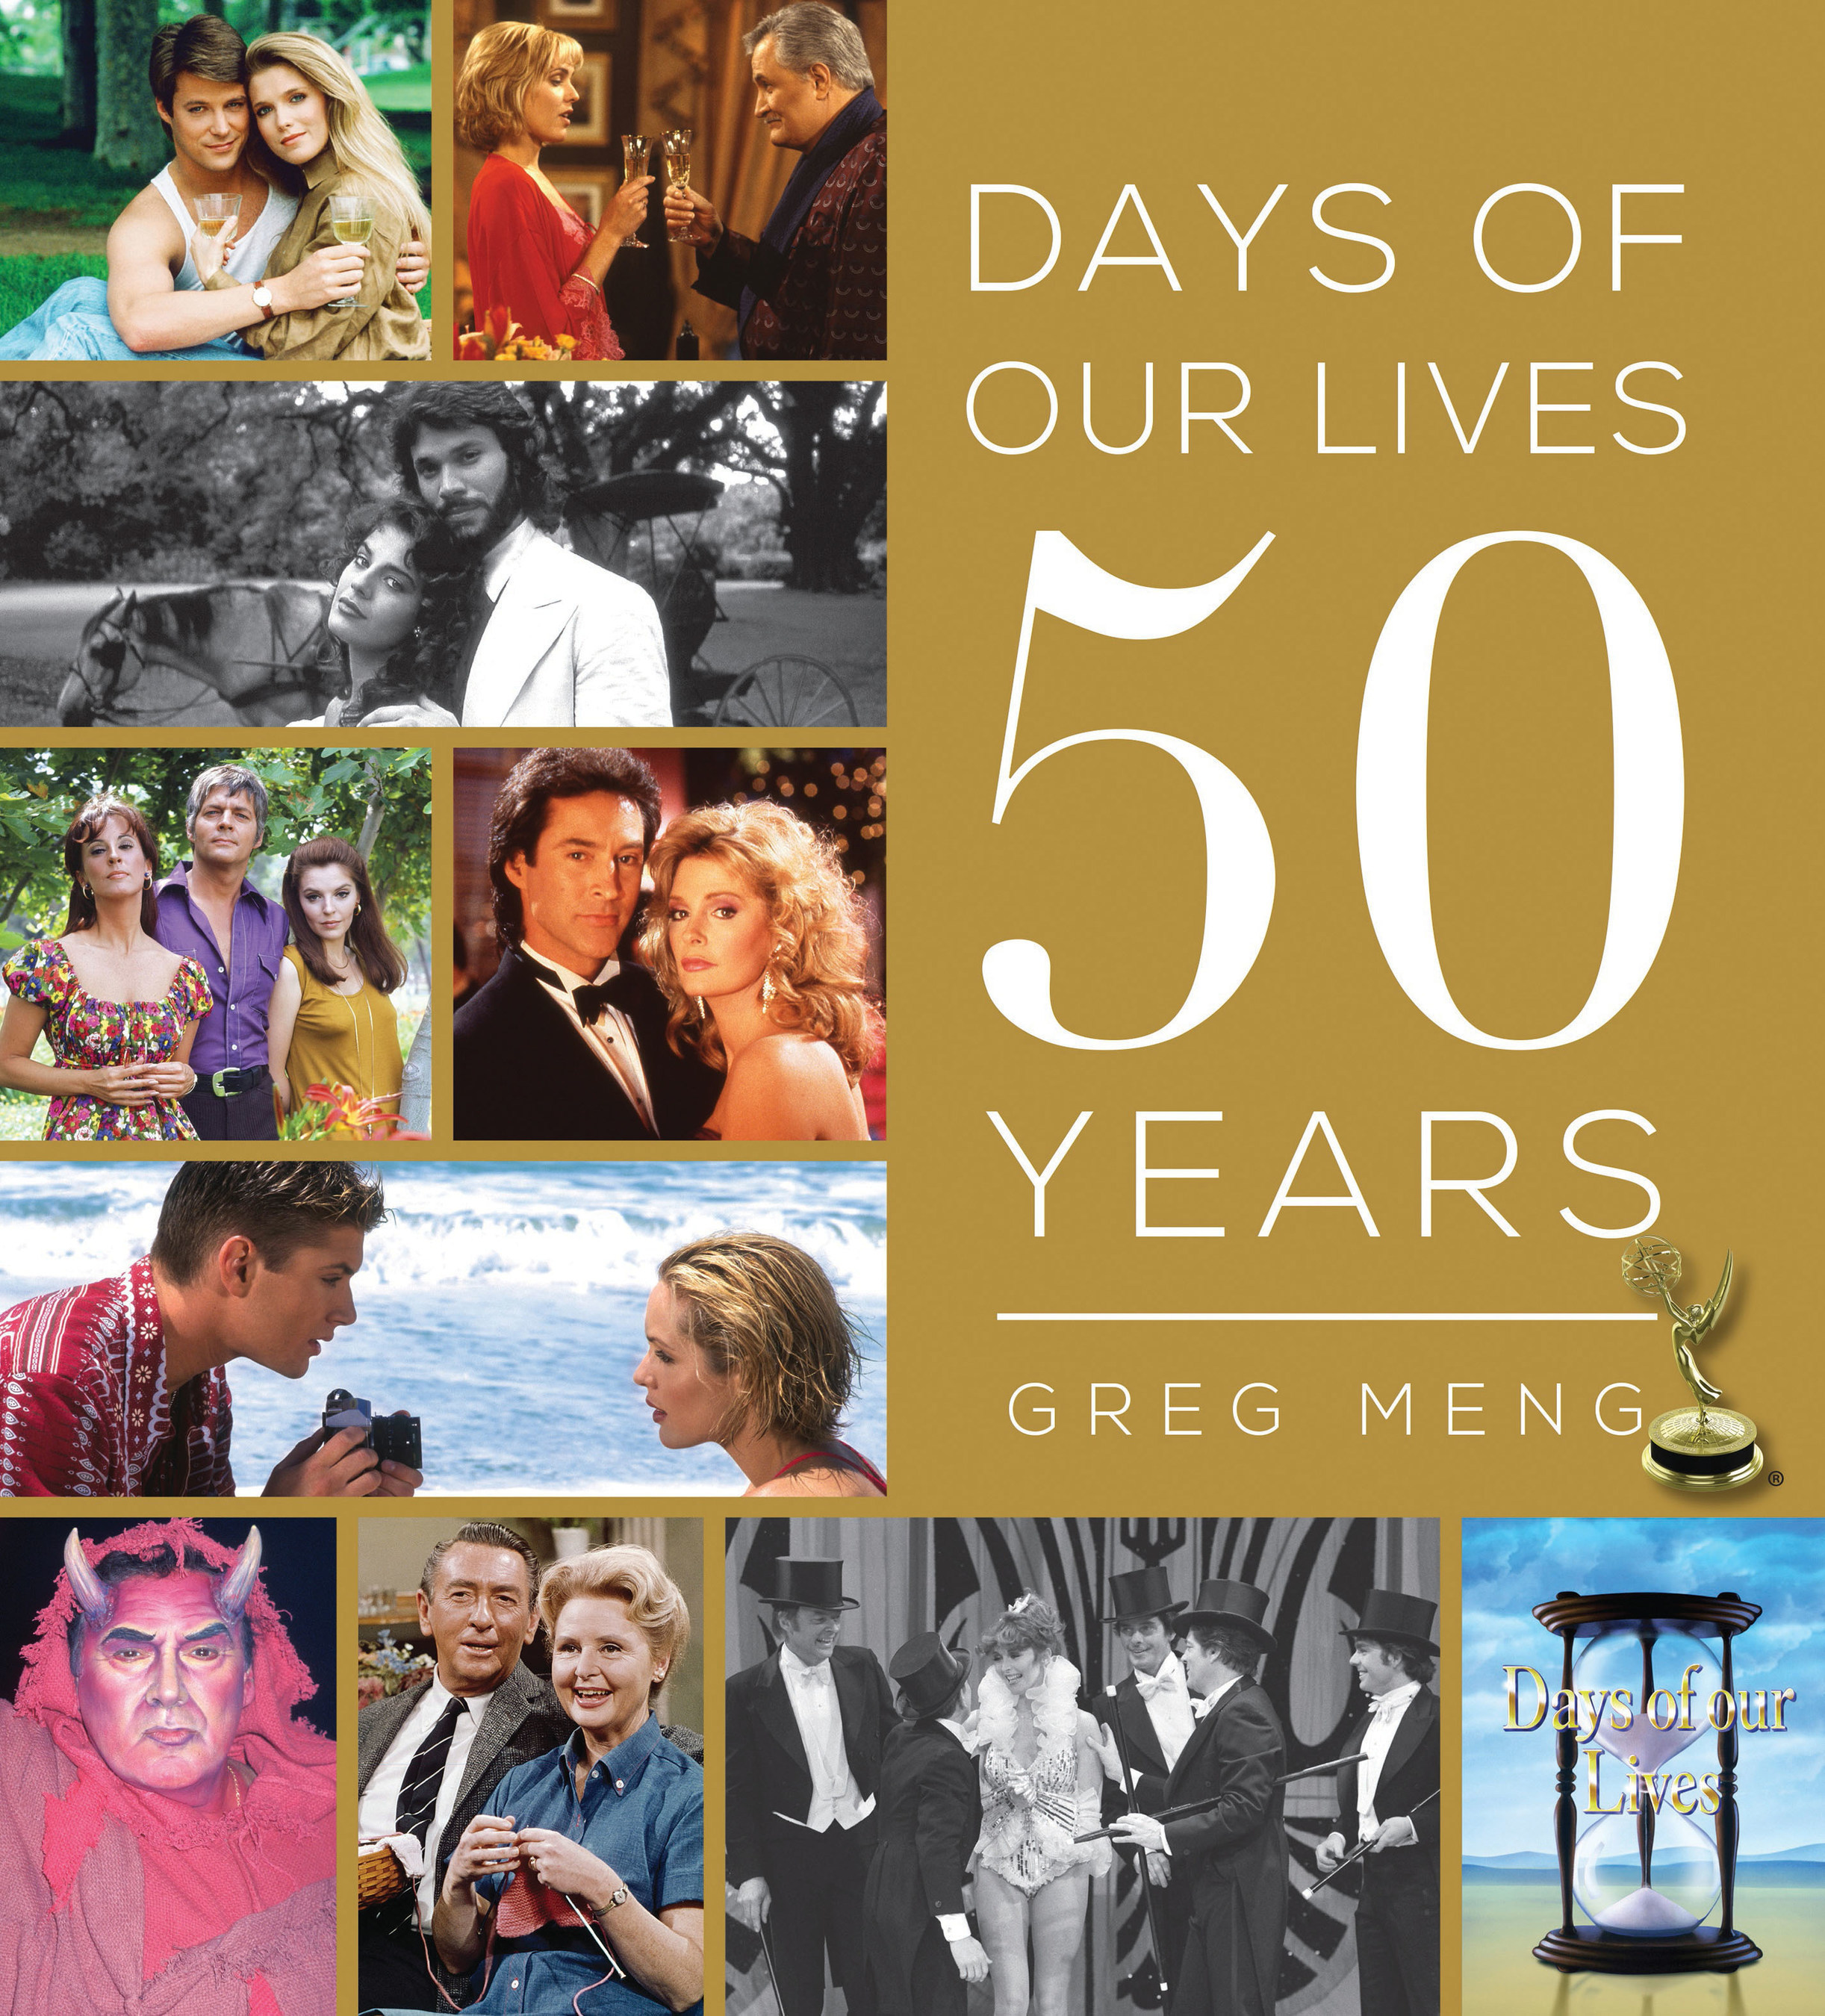 Days of our Lives Celebrates 50 Years with Launch of Official Photo Book and Multi-City Tour